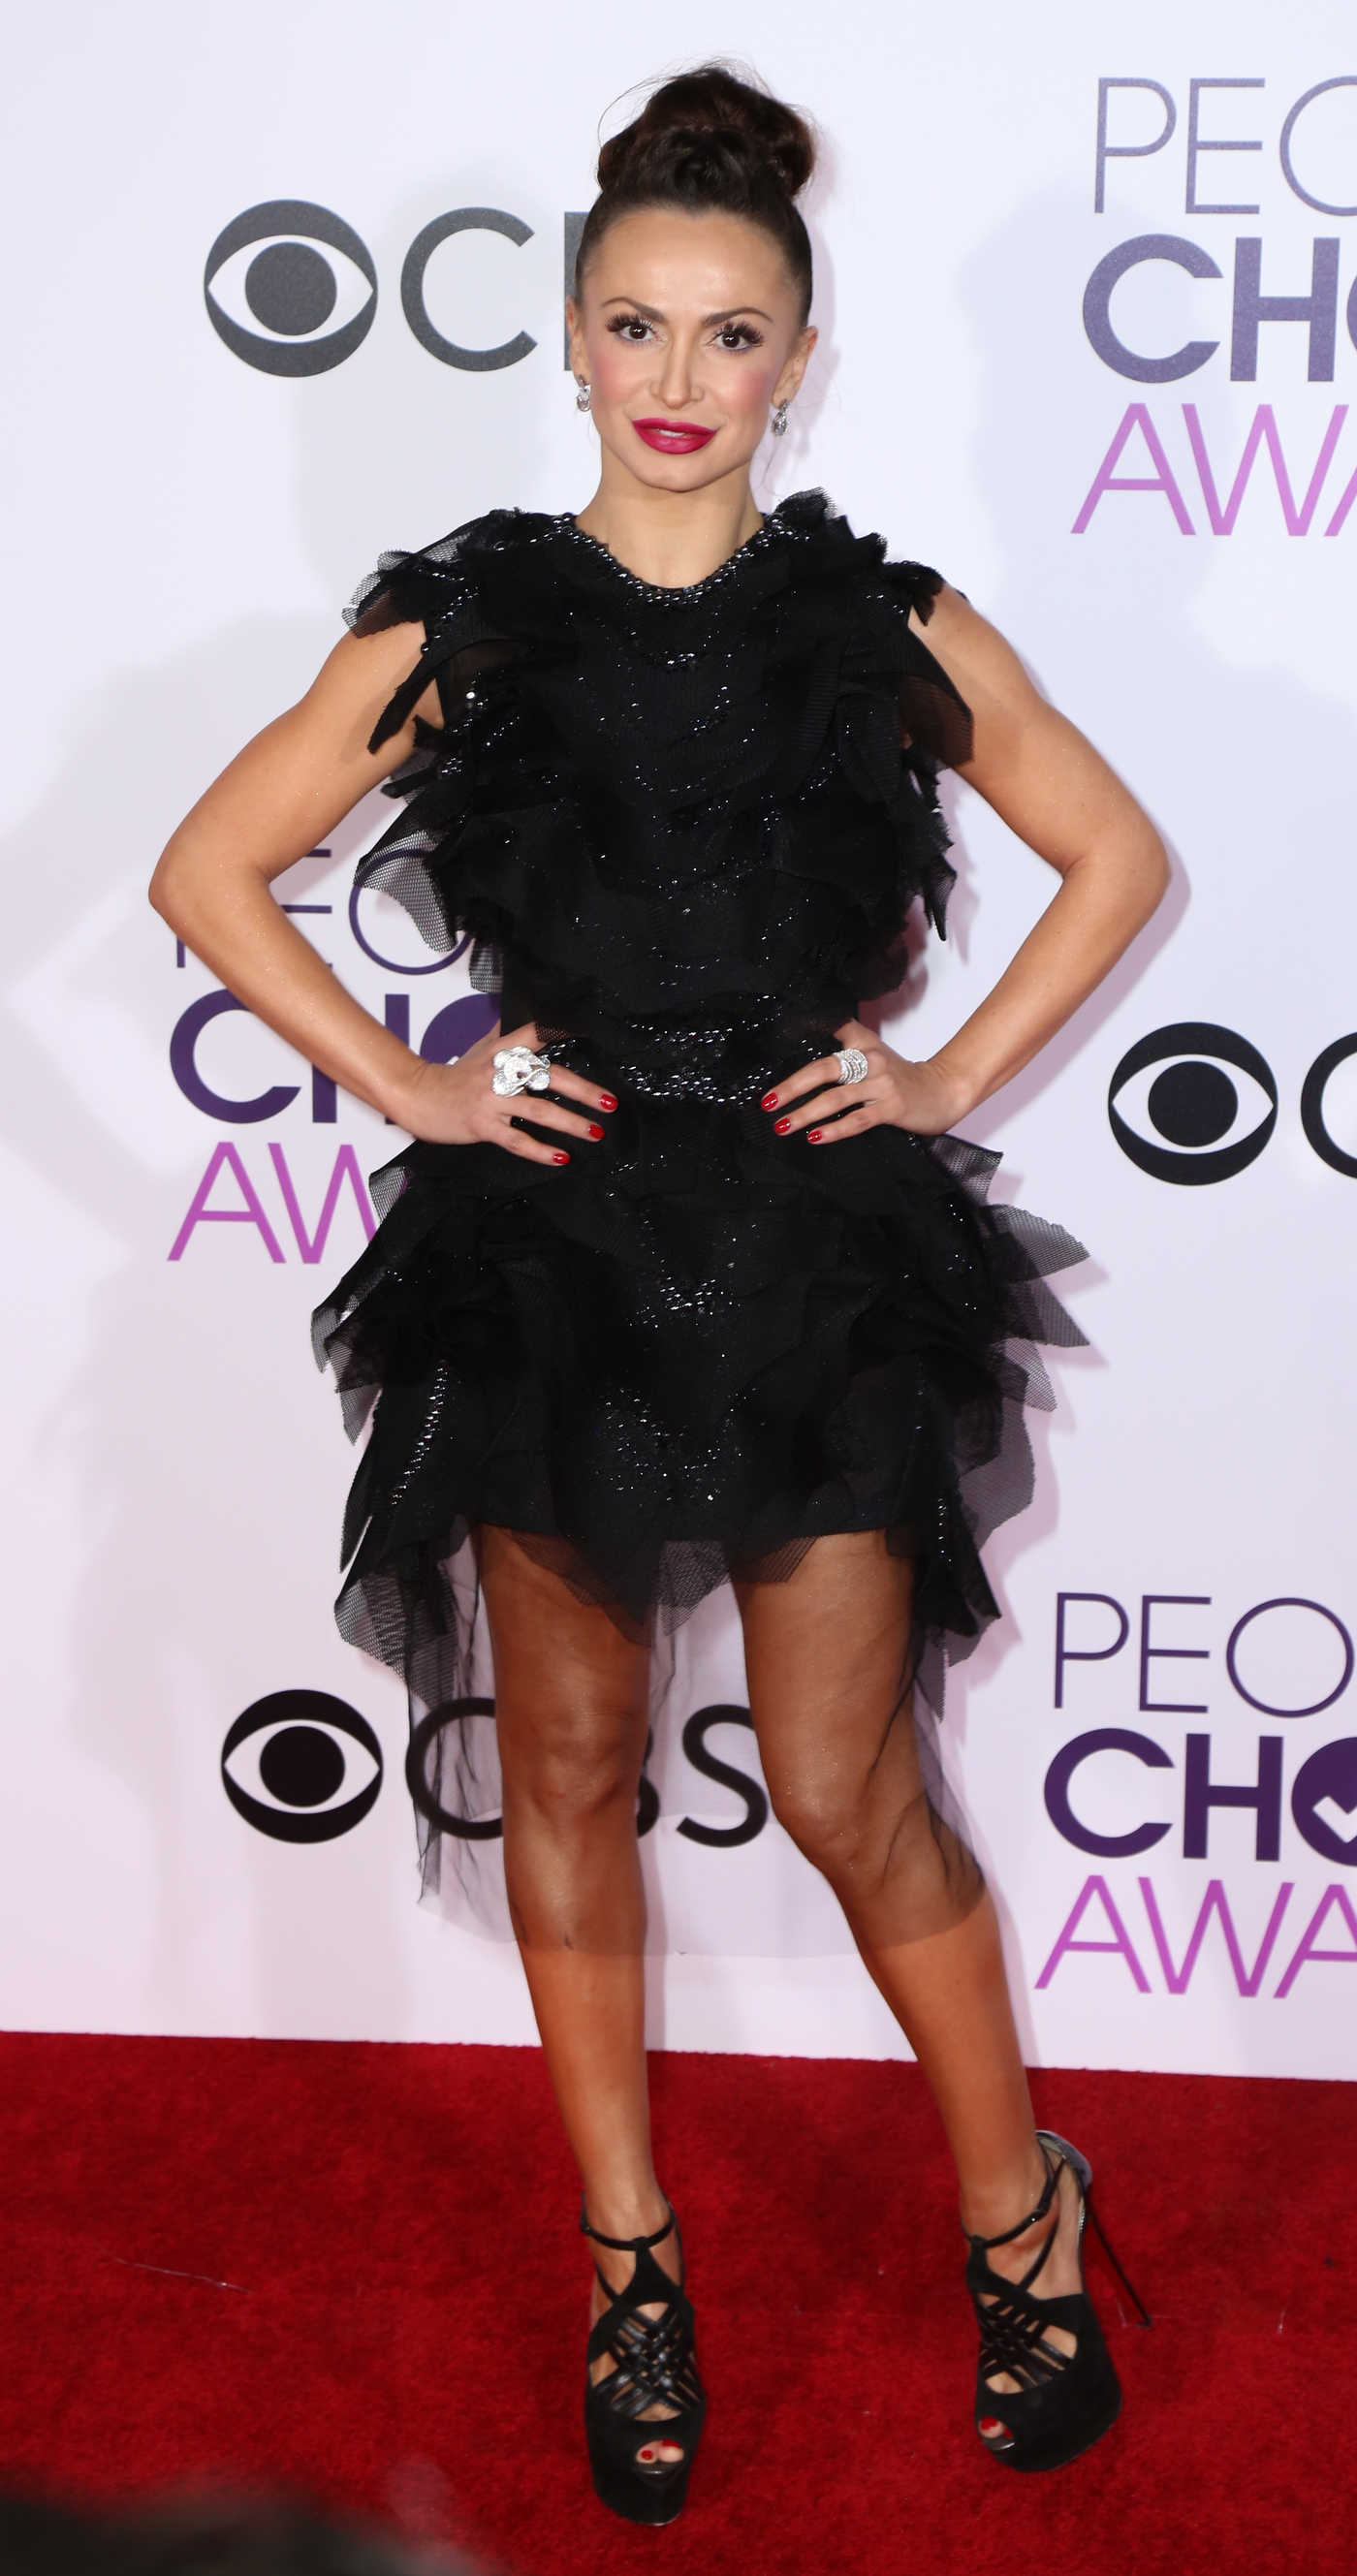 Karina Smirnoff at the 43rd Annual People's Choice Awards in Los Angeles 01/18/2017